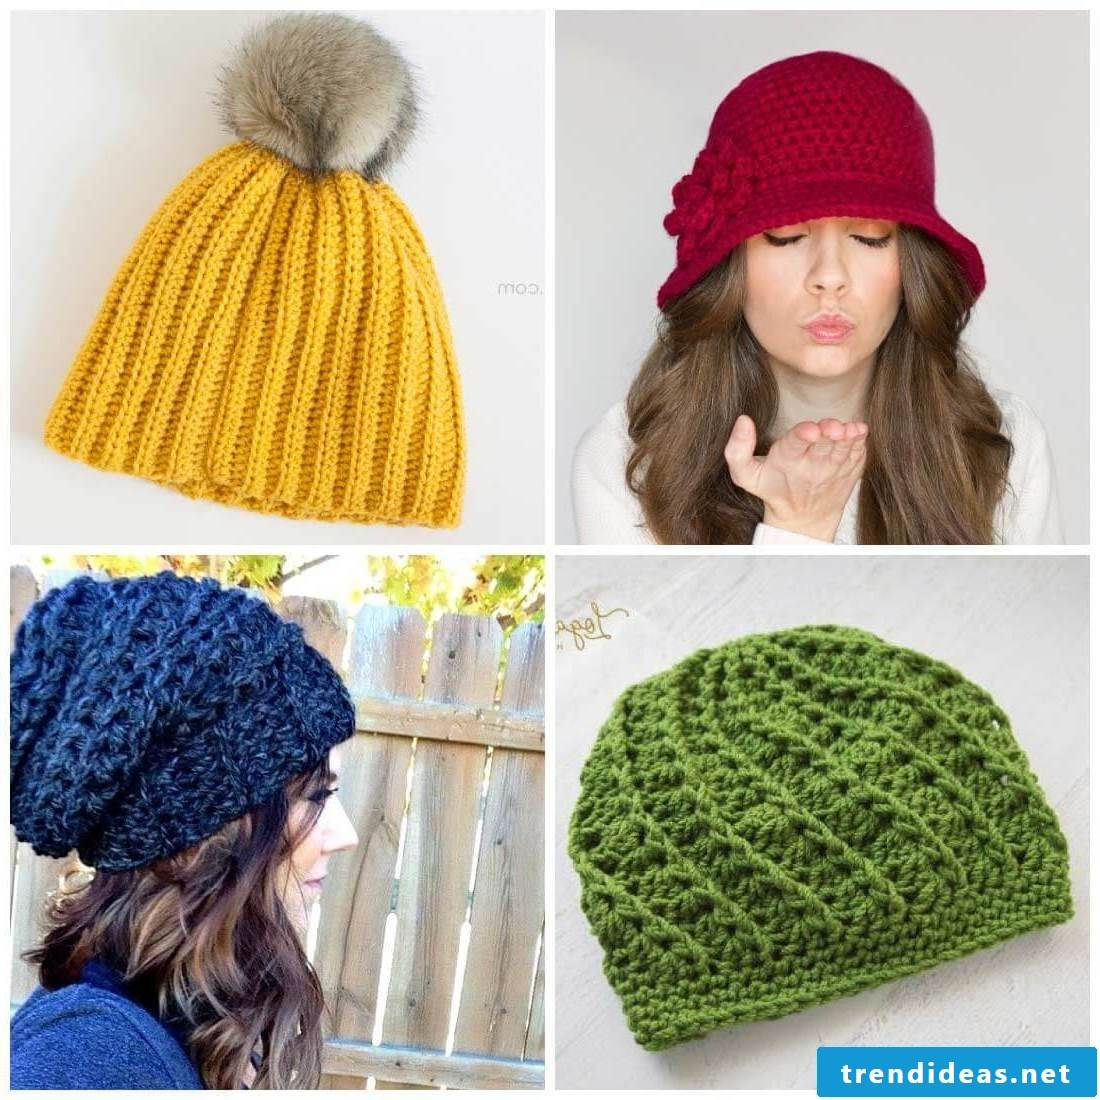 Knit cap - anyone can